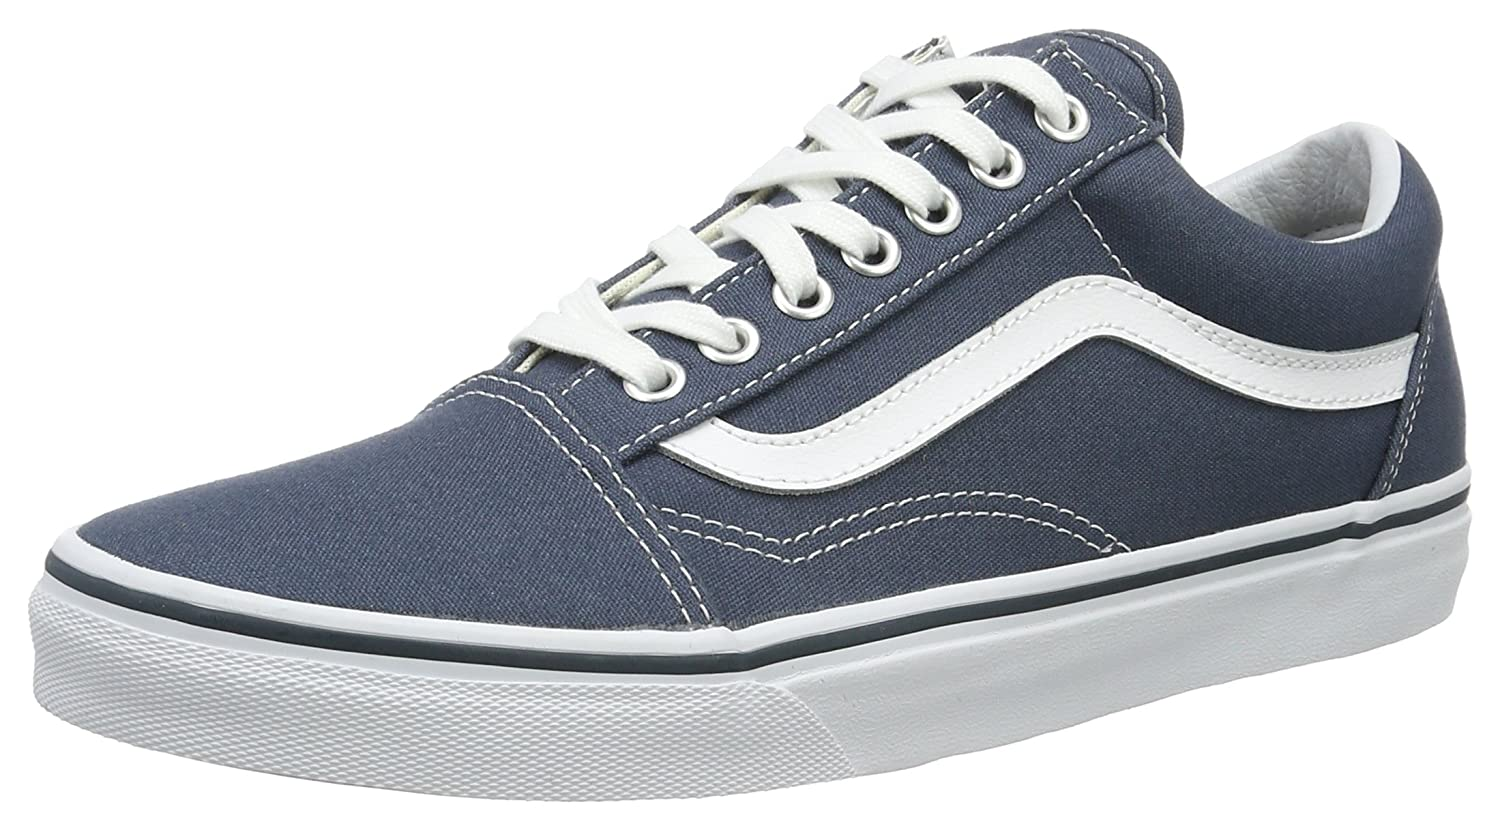 Vans Unisex Old Skool Classic Skate Shoes B01DTFDPA4 10.5 B(M) US Women / 9 D(M) US Men|Dark Slate